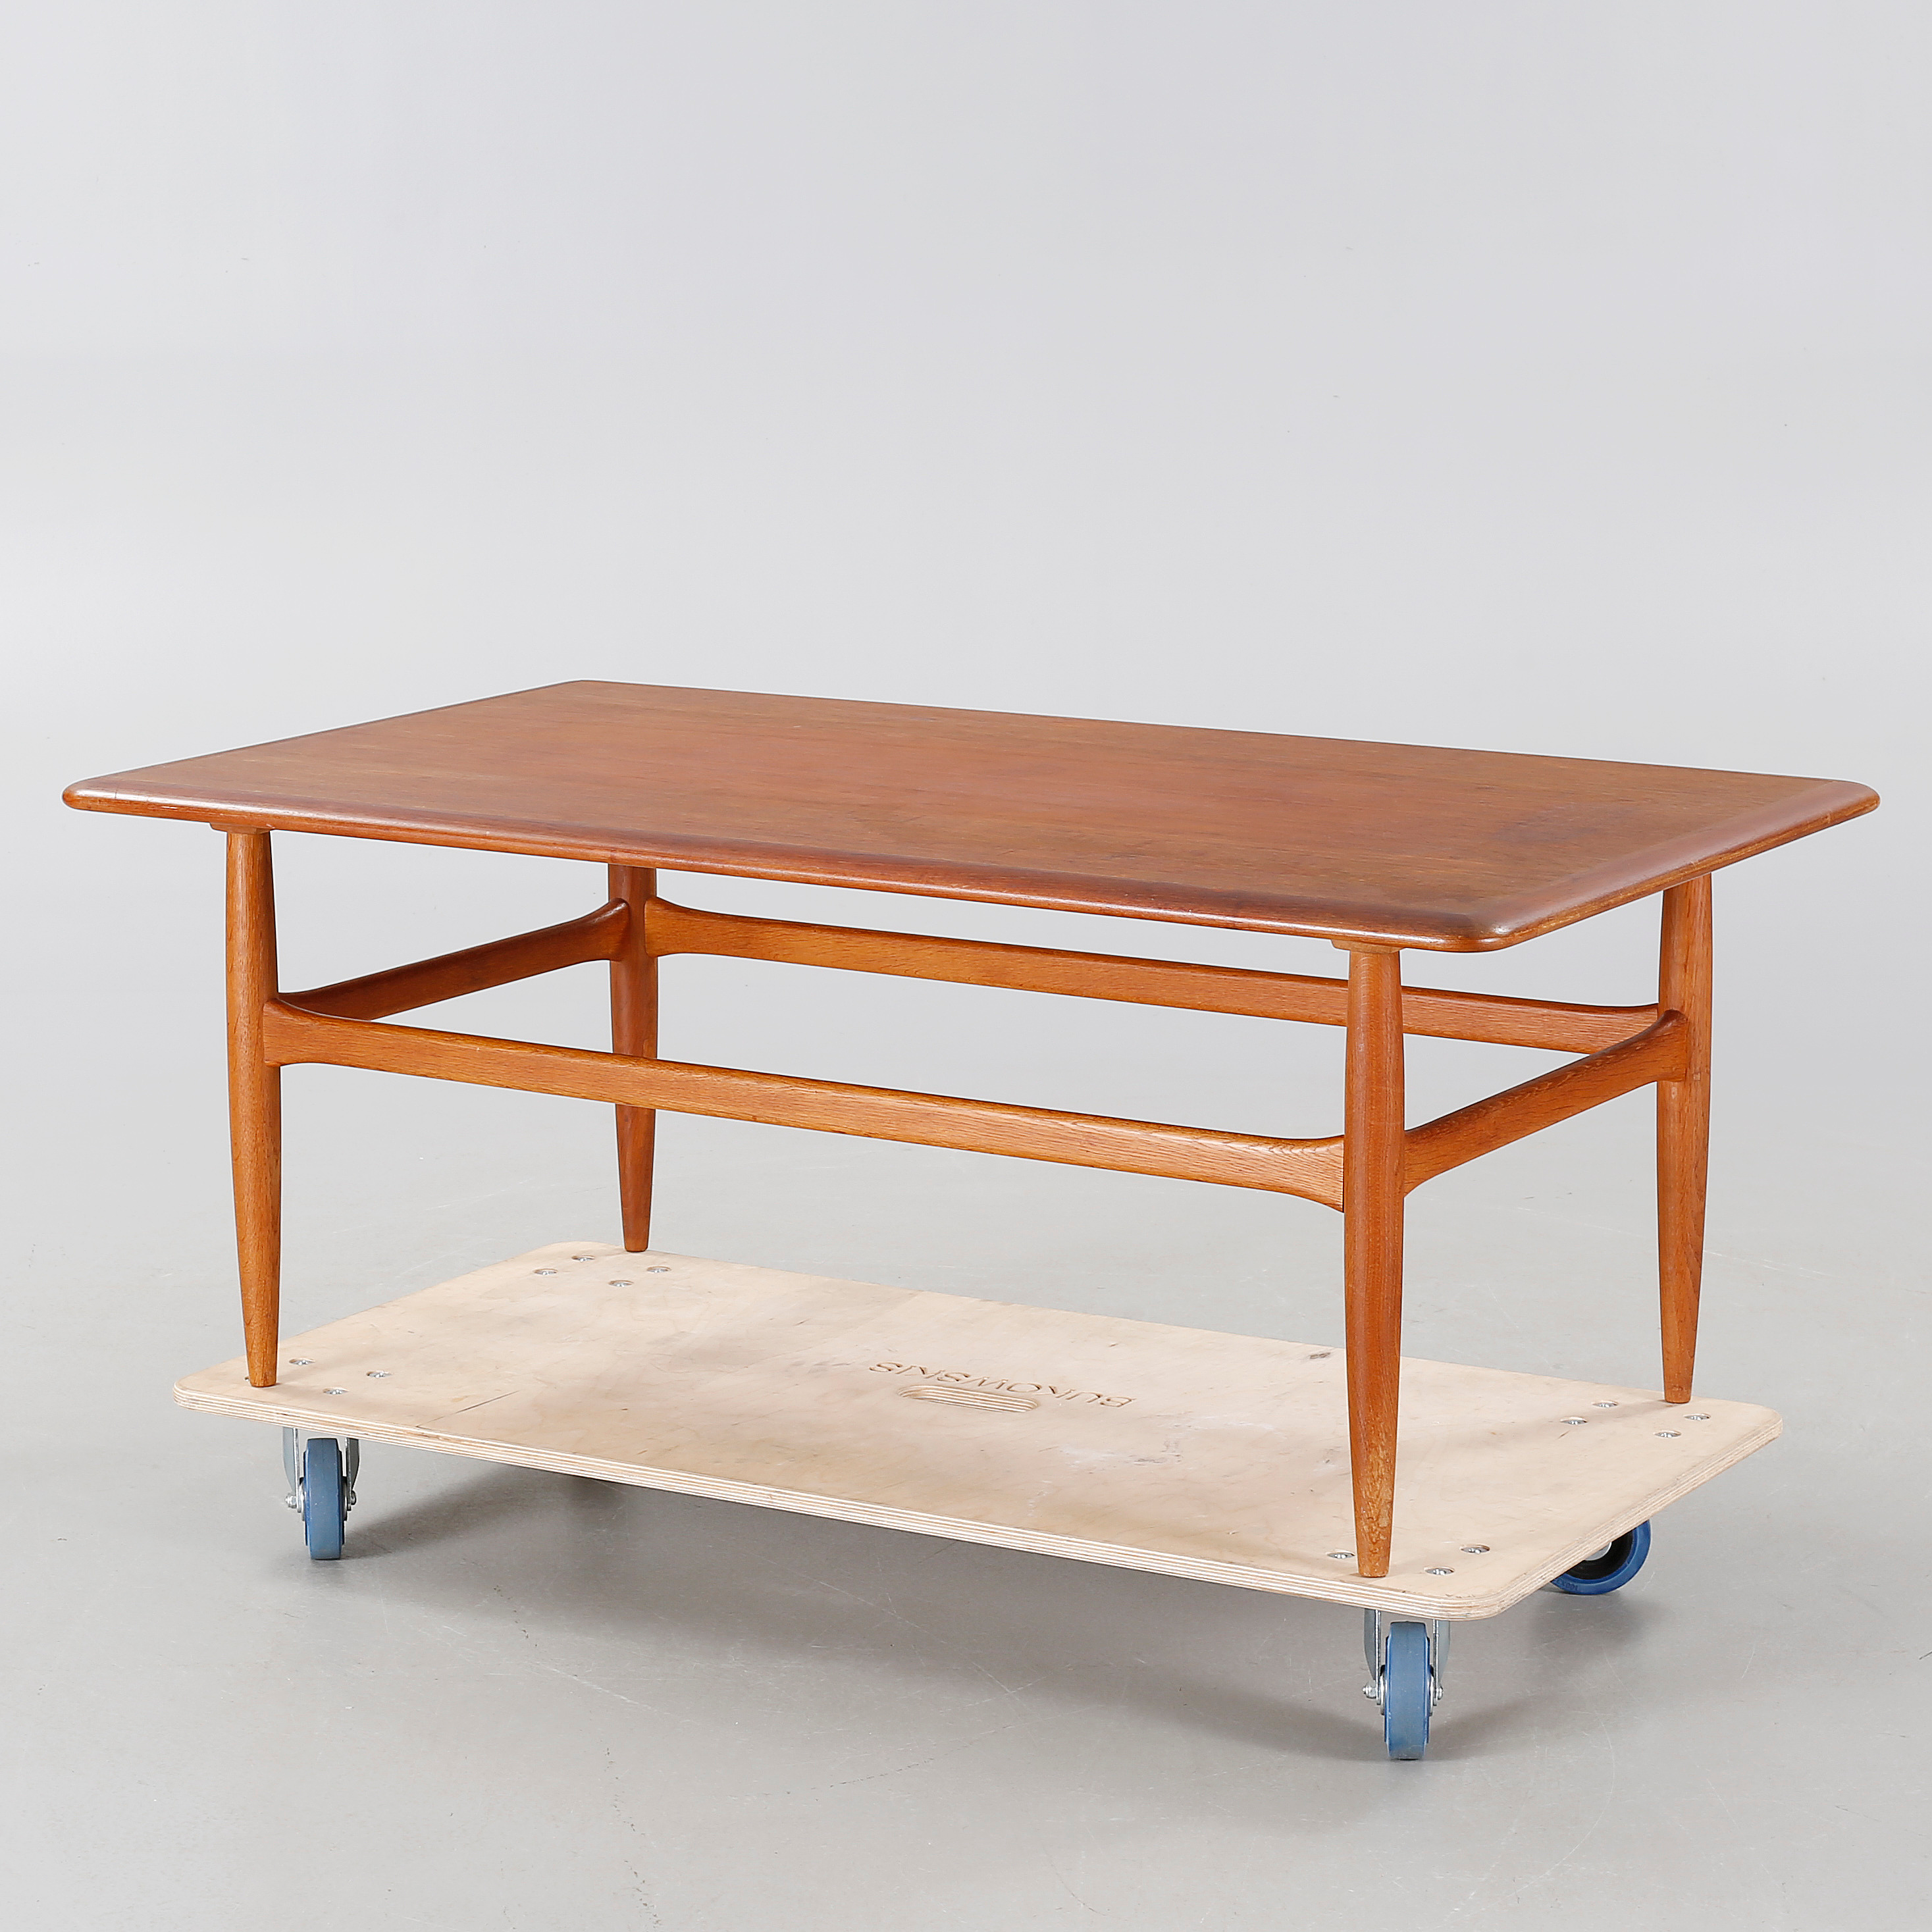 Karl erik ekselius a coffee table by jason denmark 195060s 10773697 bukobject geotapseo Image collections